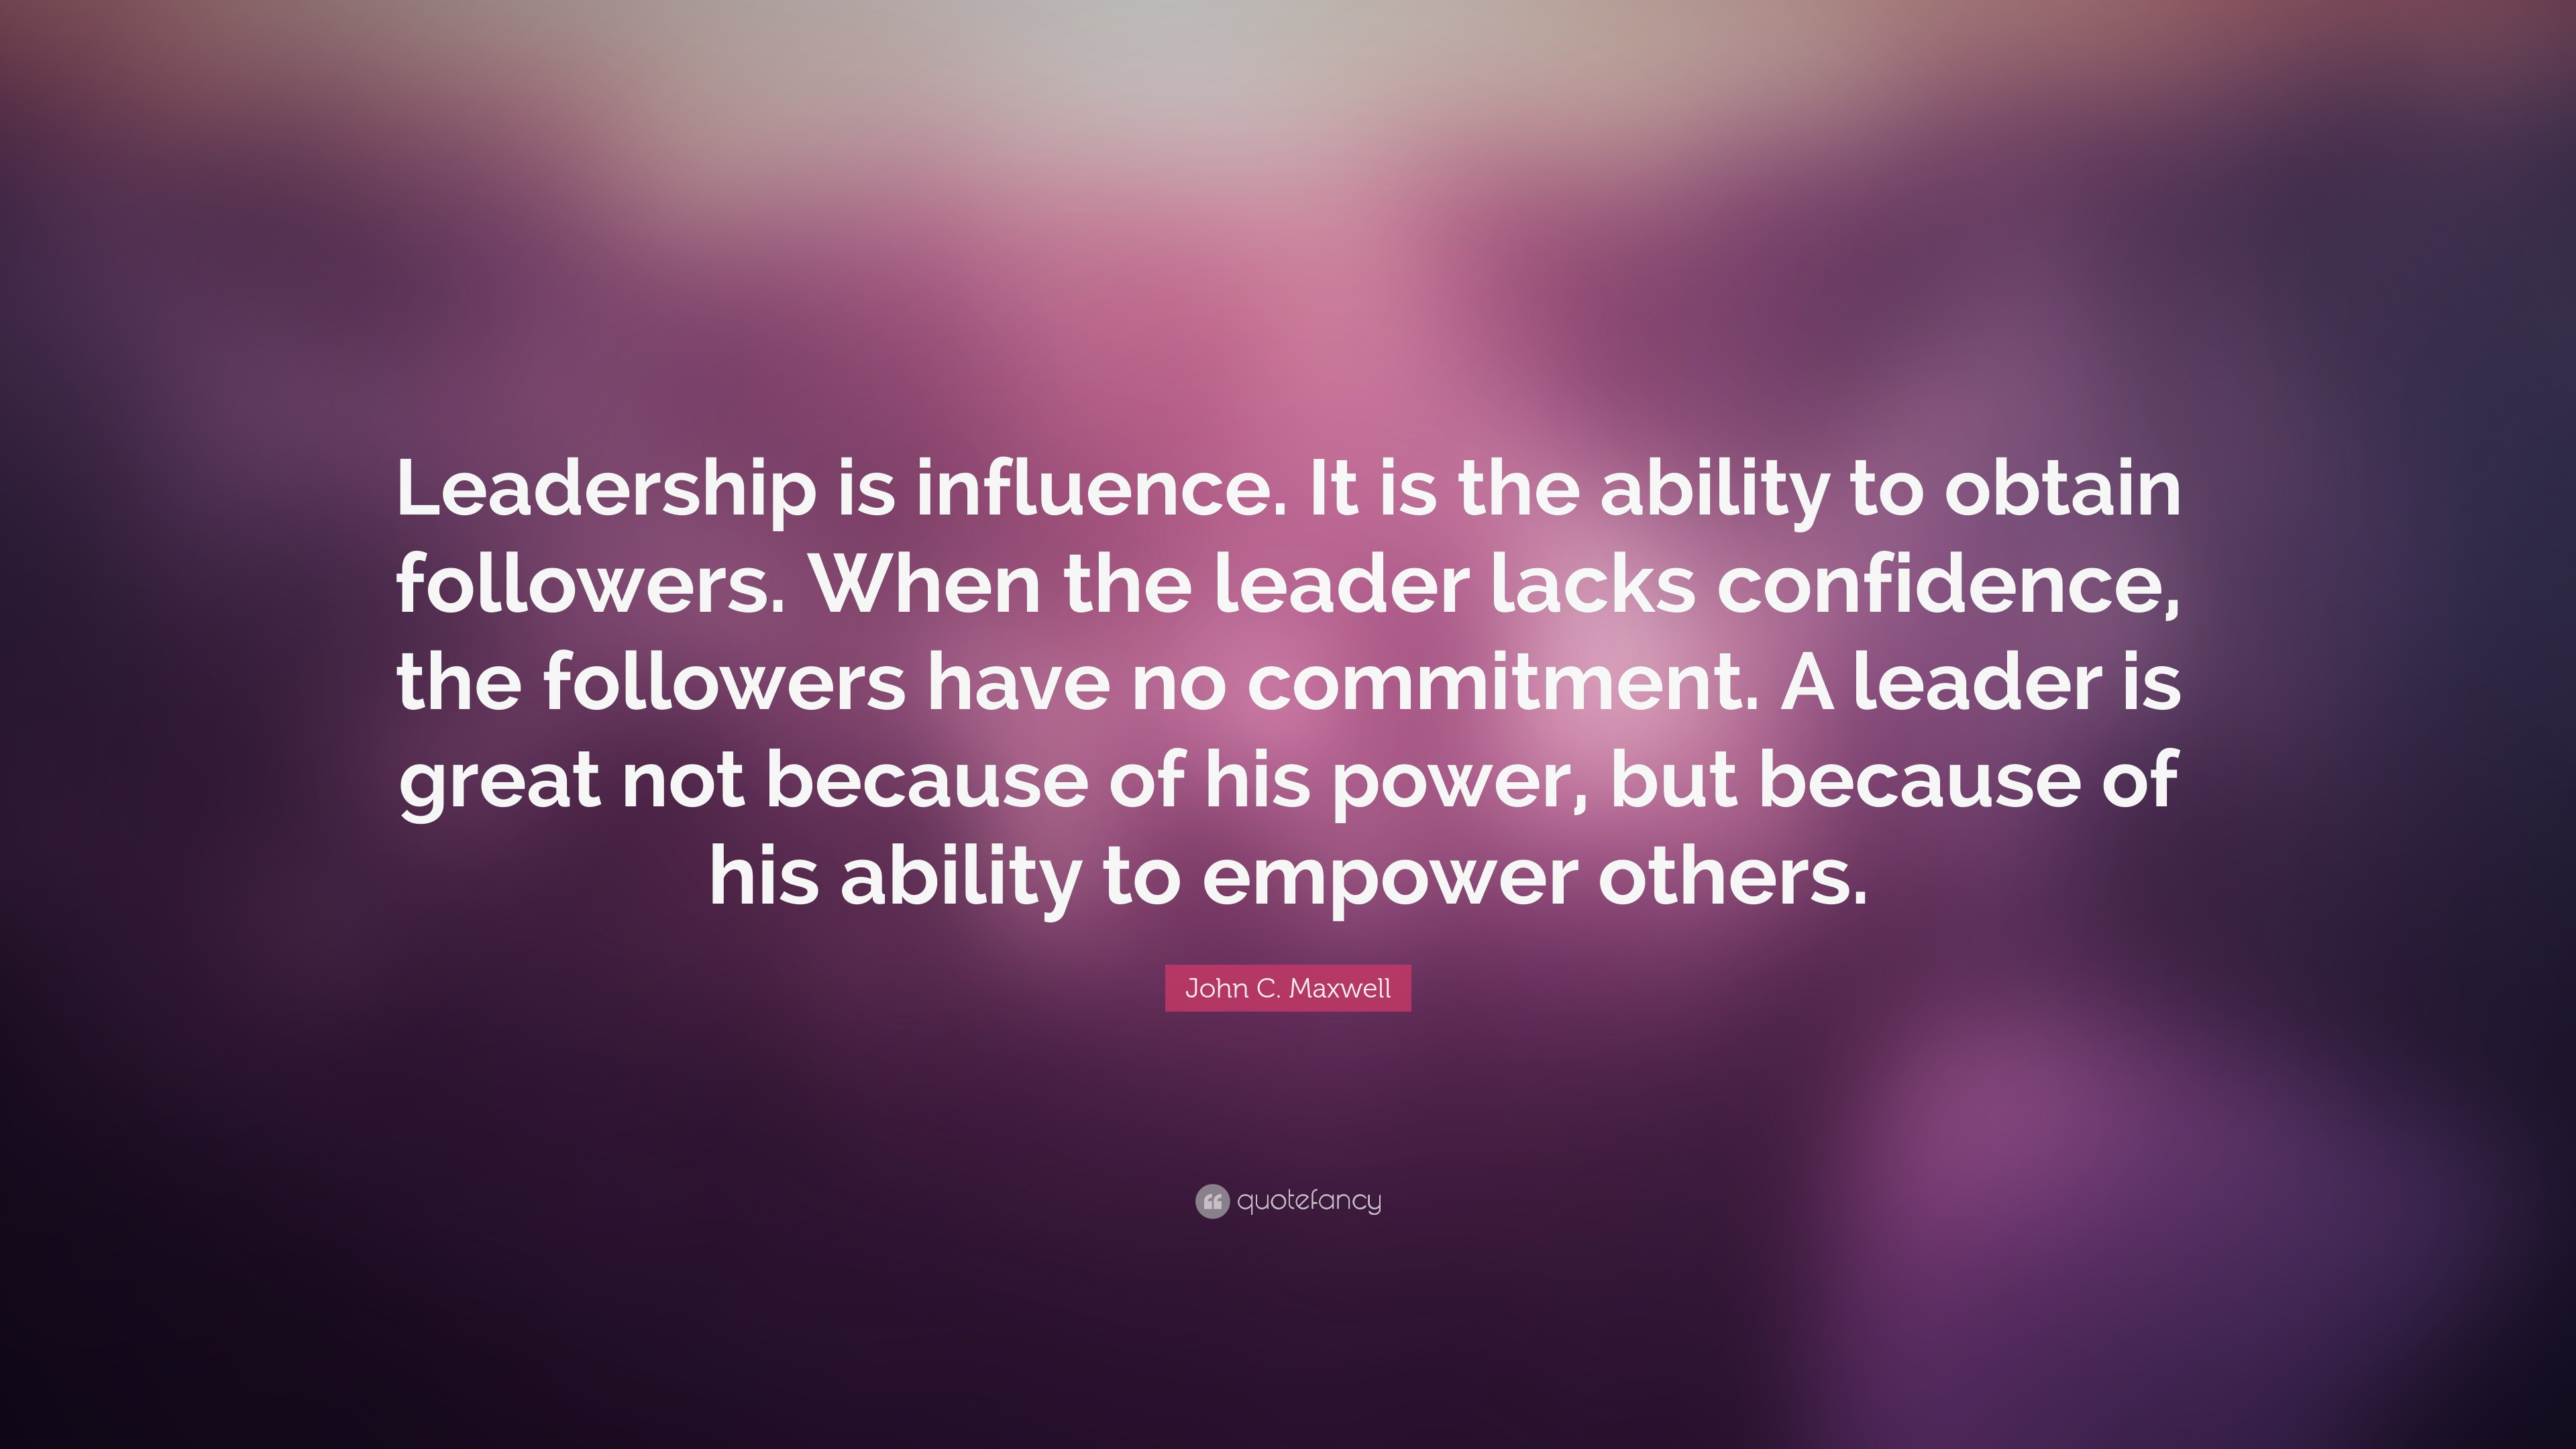 john c  maxwell quote   u201cleadership is influence  it is the